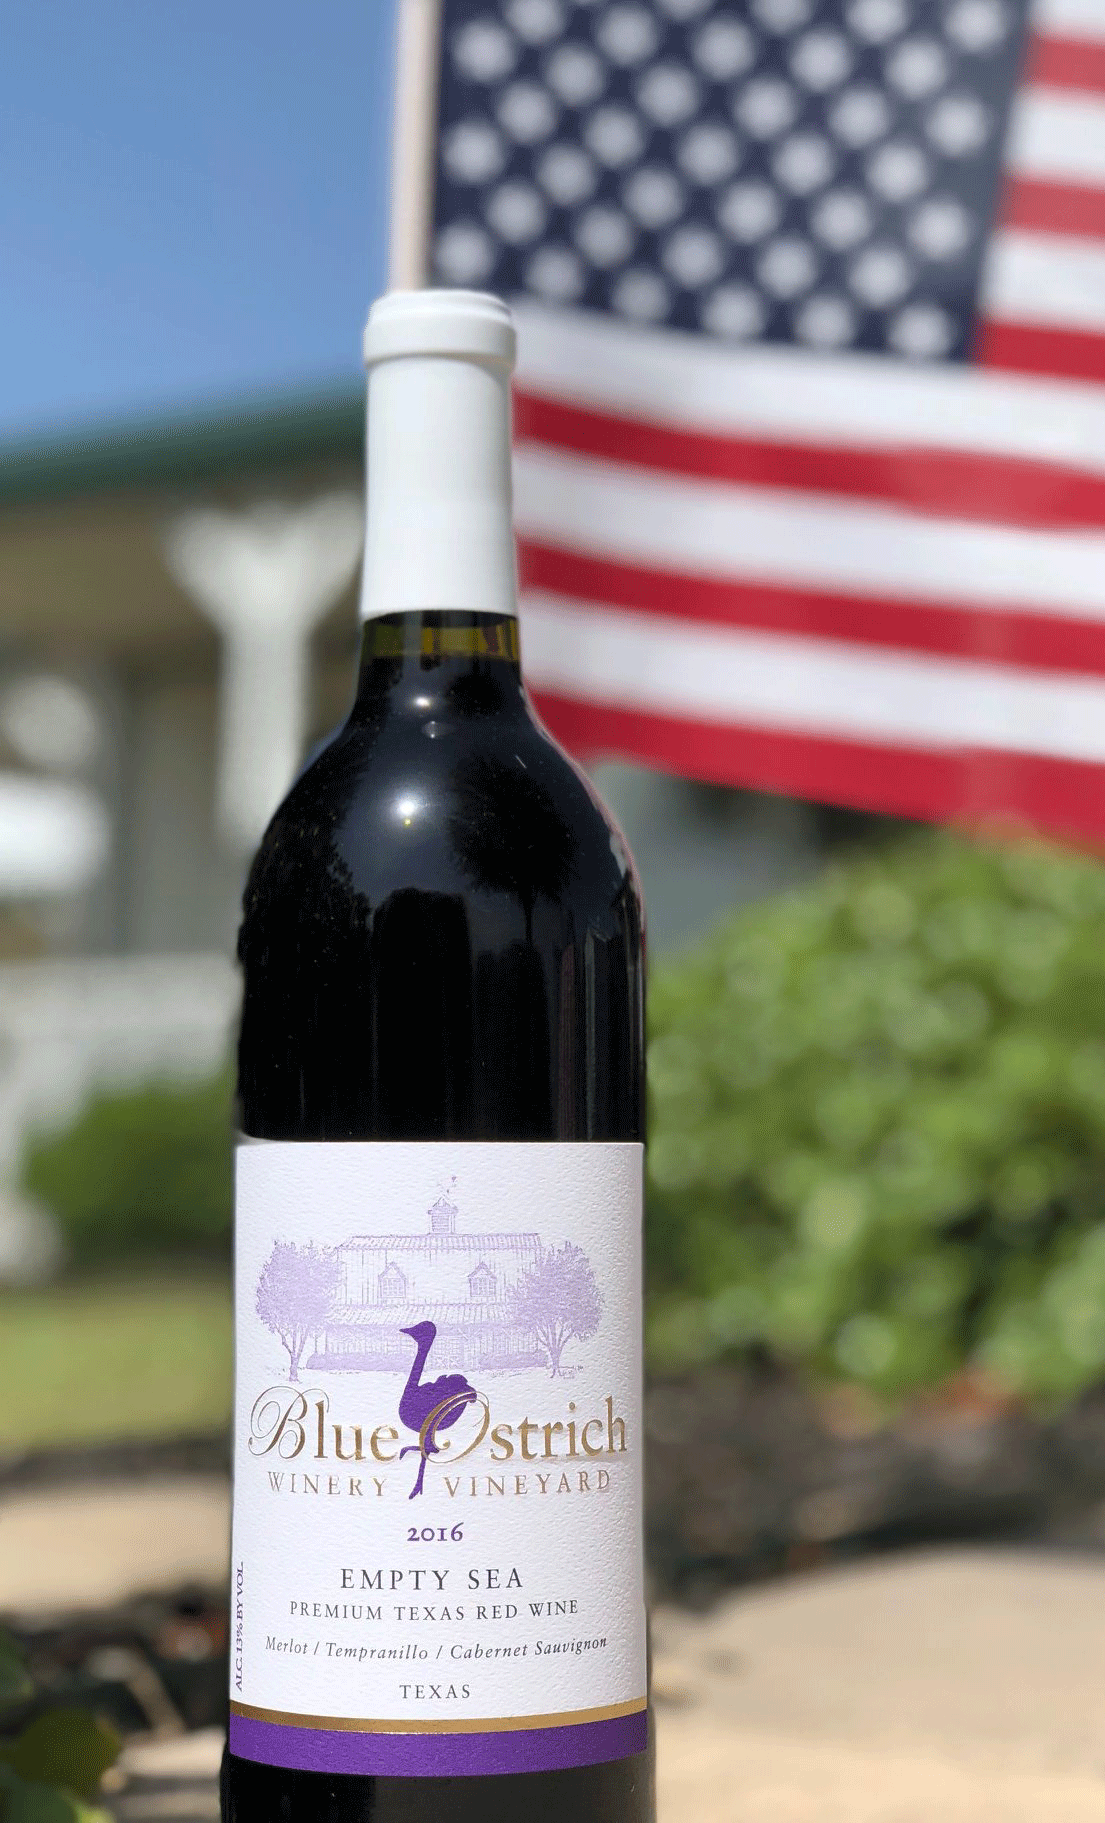 wine bottle outside in front of a USA flag